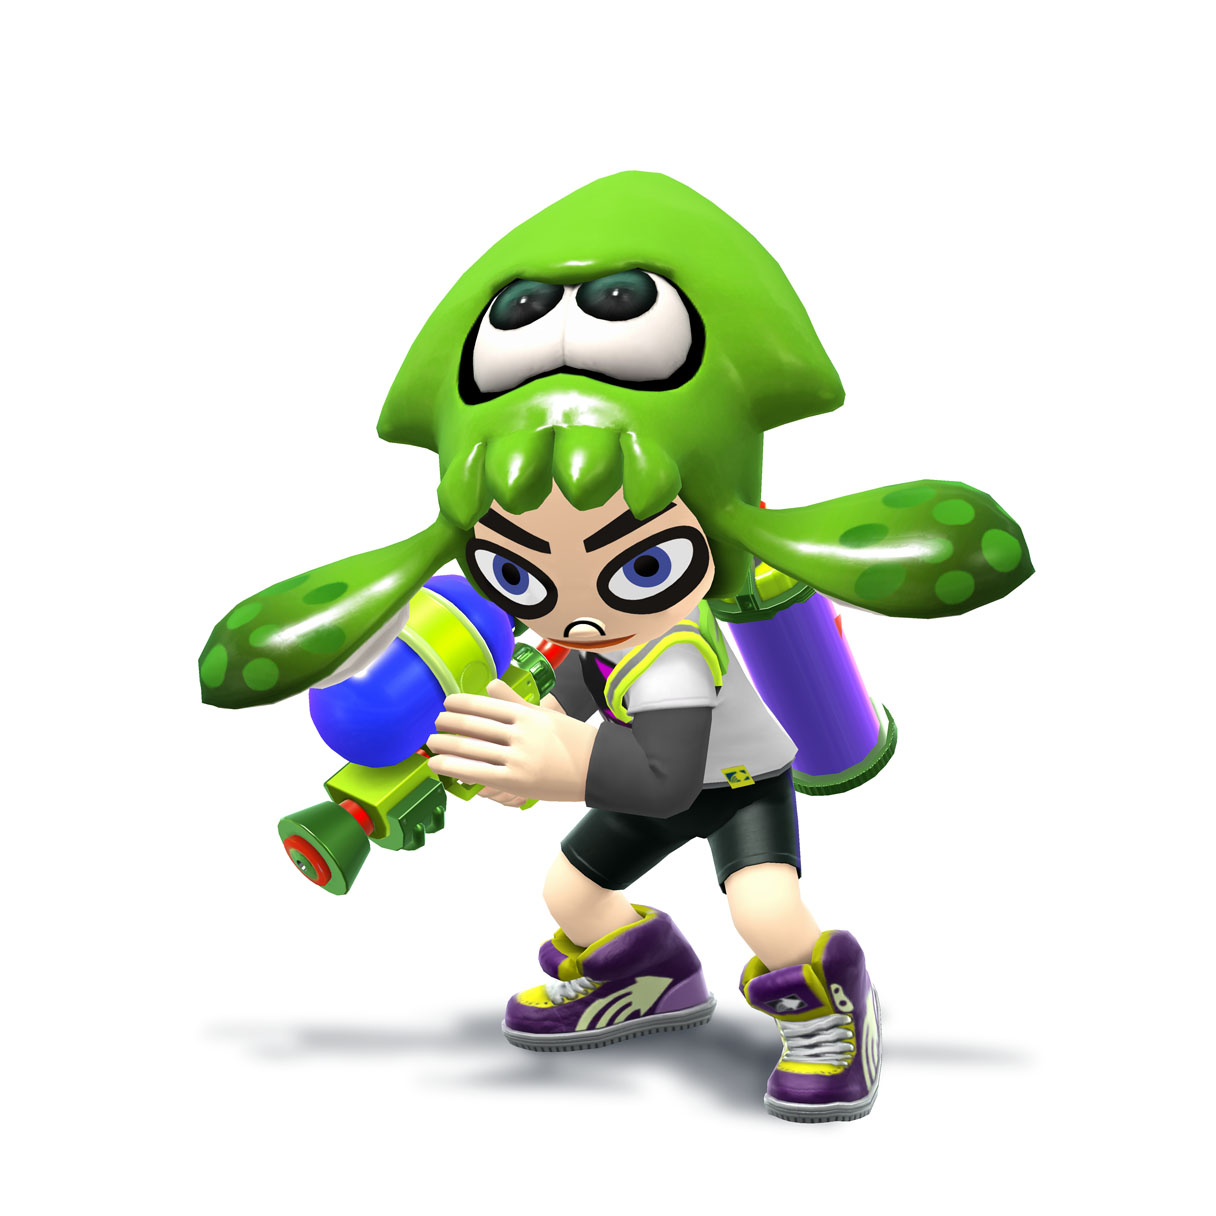 Splatoon Splashes Into Super Smash Bros With Fighter Costumes New 3DS Cover Plates And More